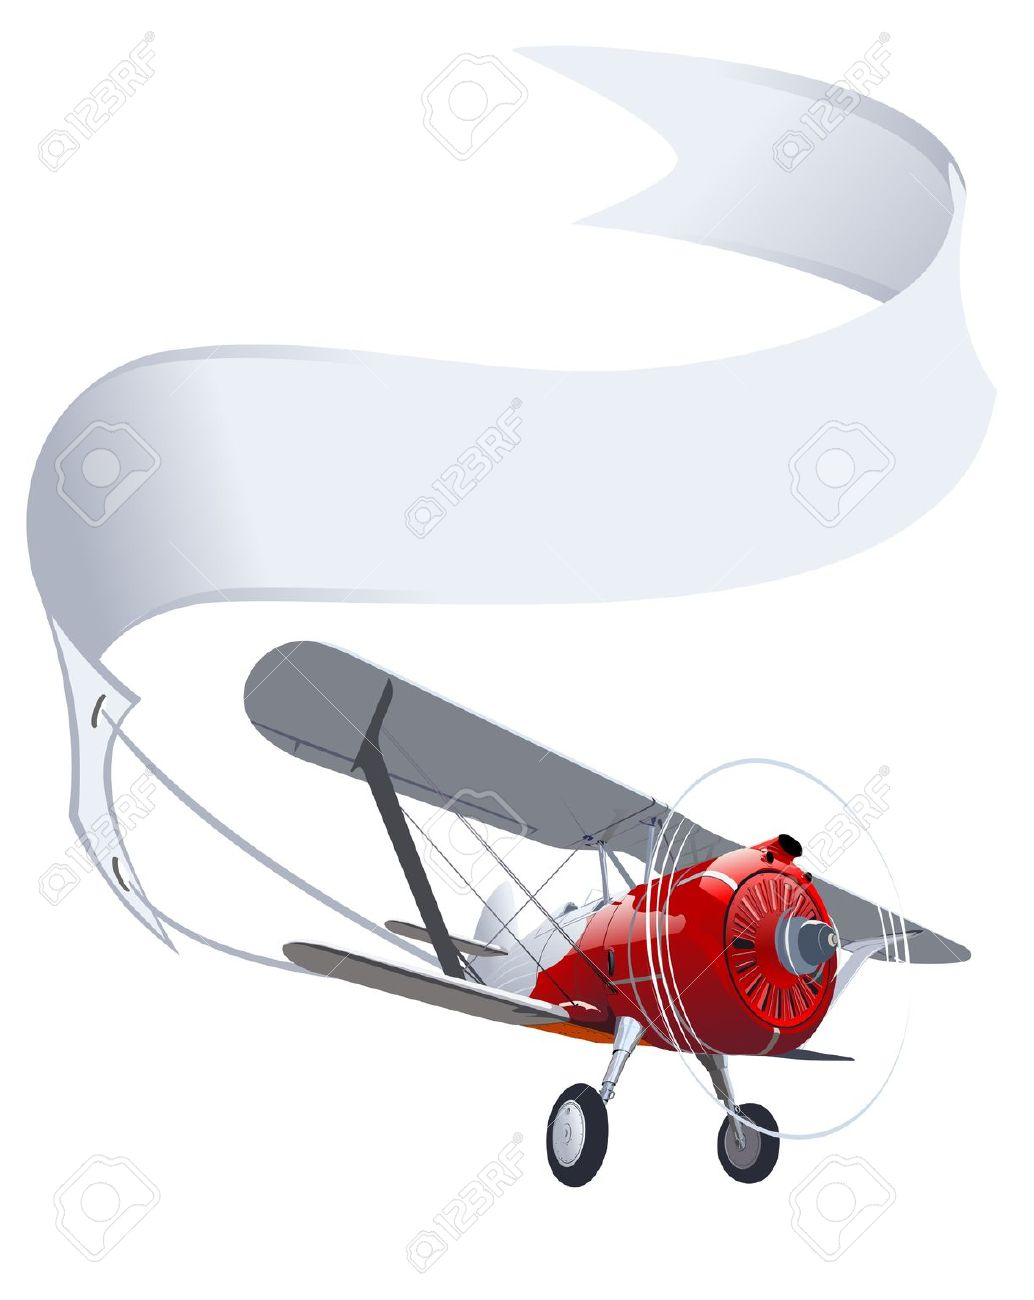 Red plane banner clipart free download Red plane banner clipart - ClipartFest free download